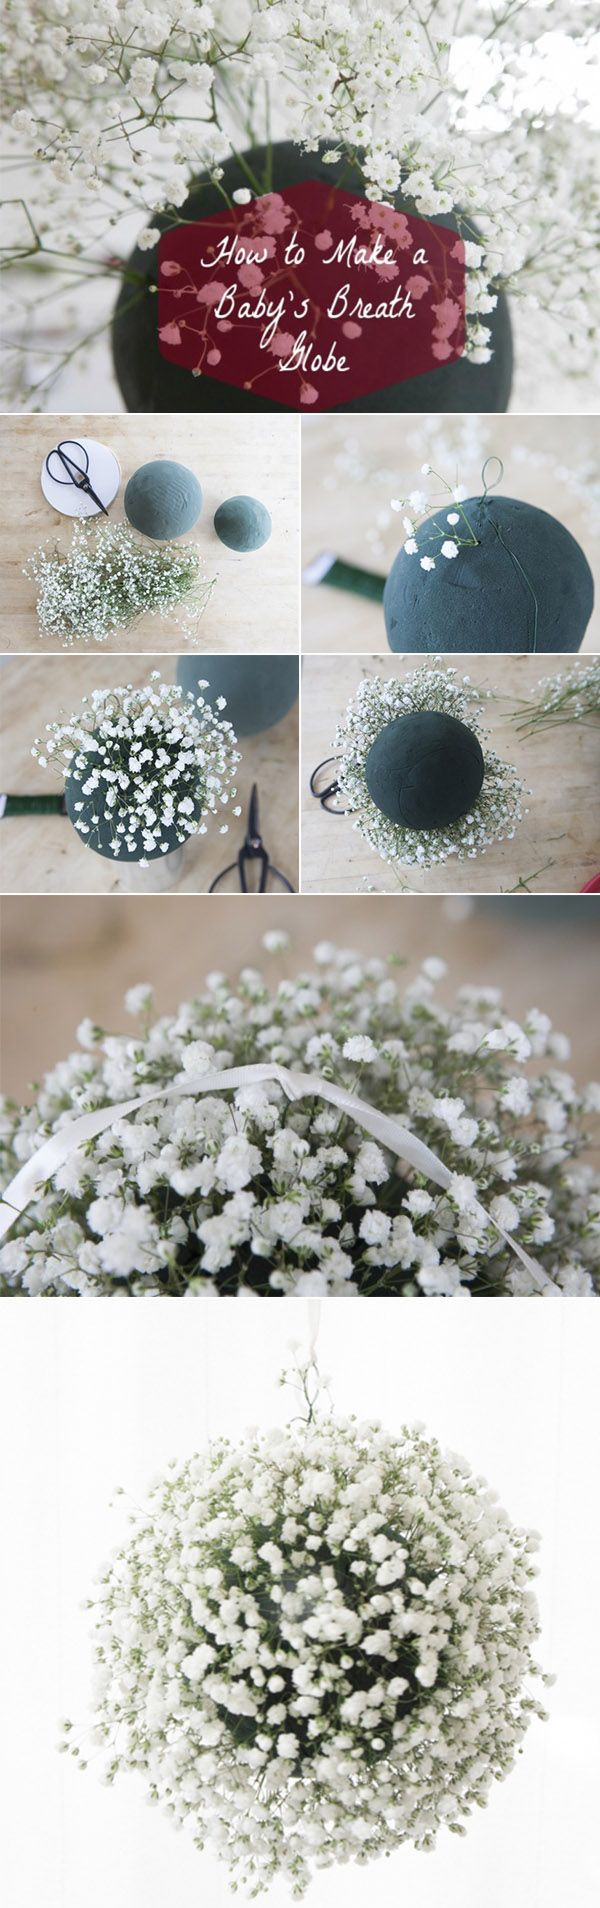 how to make a baby's breath diy wedding floral ball step by step